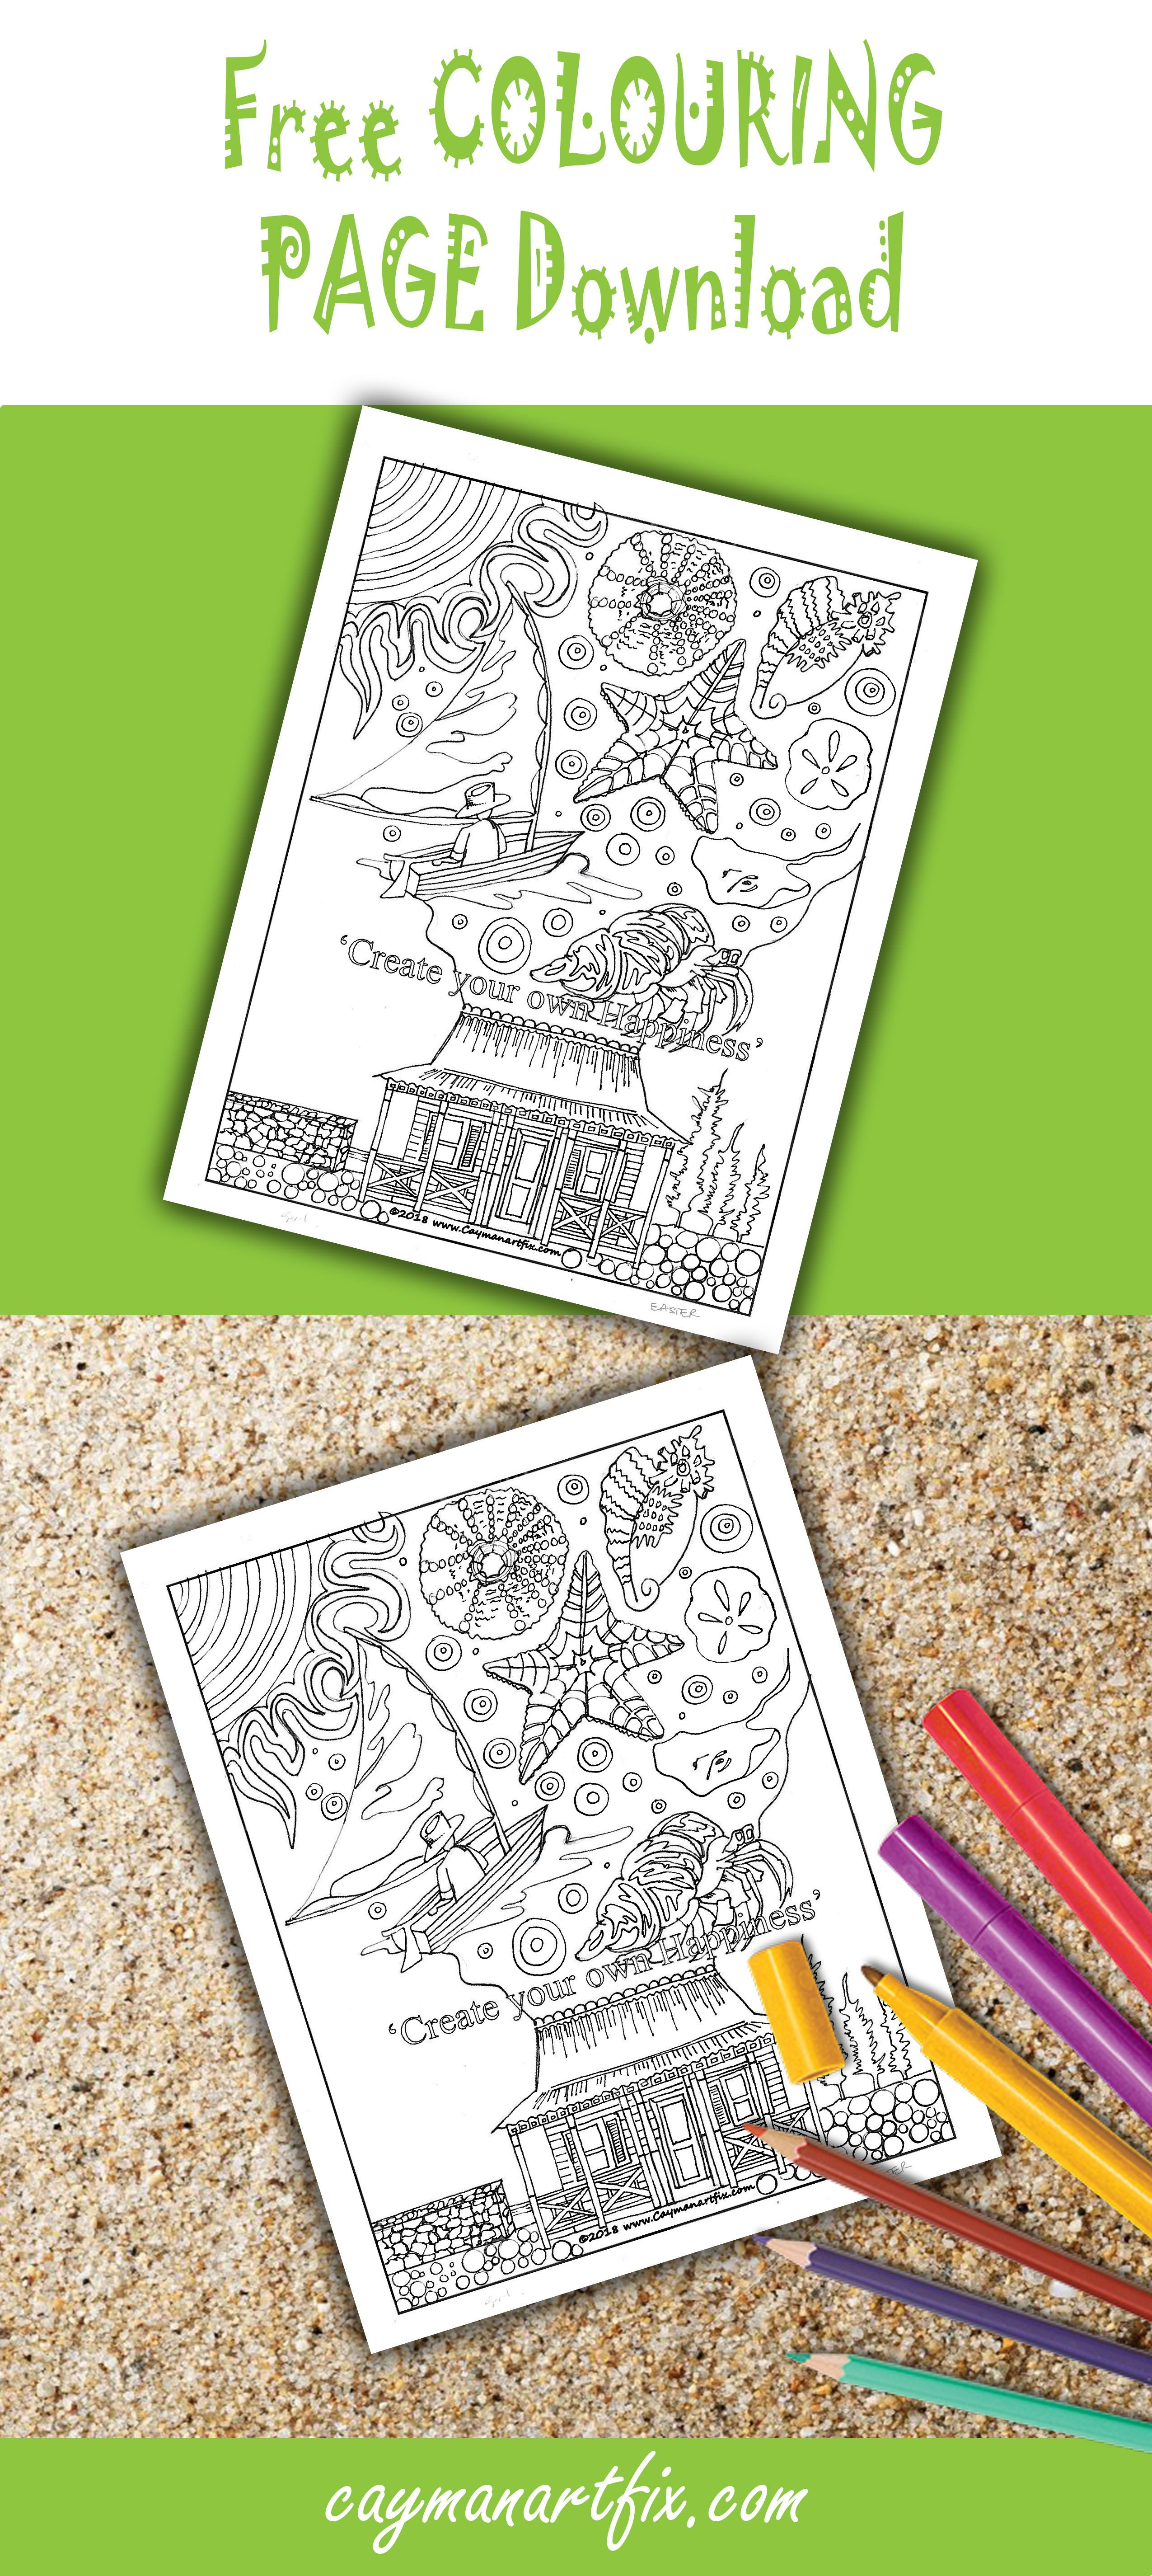 Get Your April Colouring Page Now Cayman Art Fix Coloring Pages Page Online Free Coloring Pages